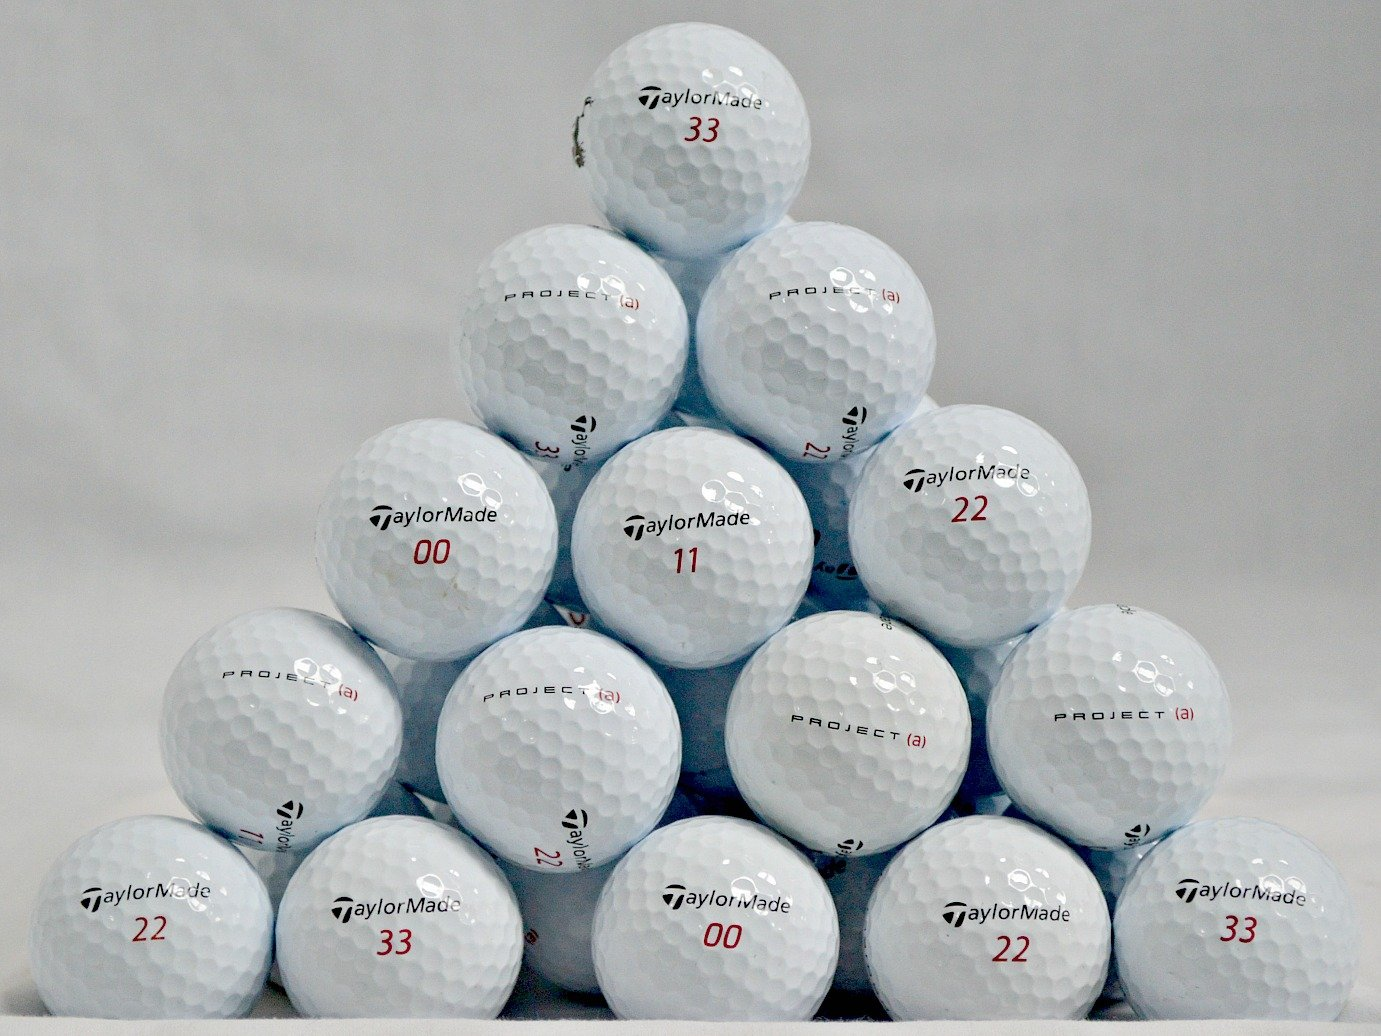 TaylorMade 60 Project A Near Mint Used Golf Balls